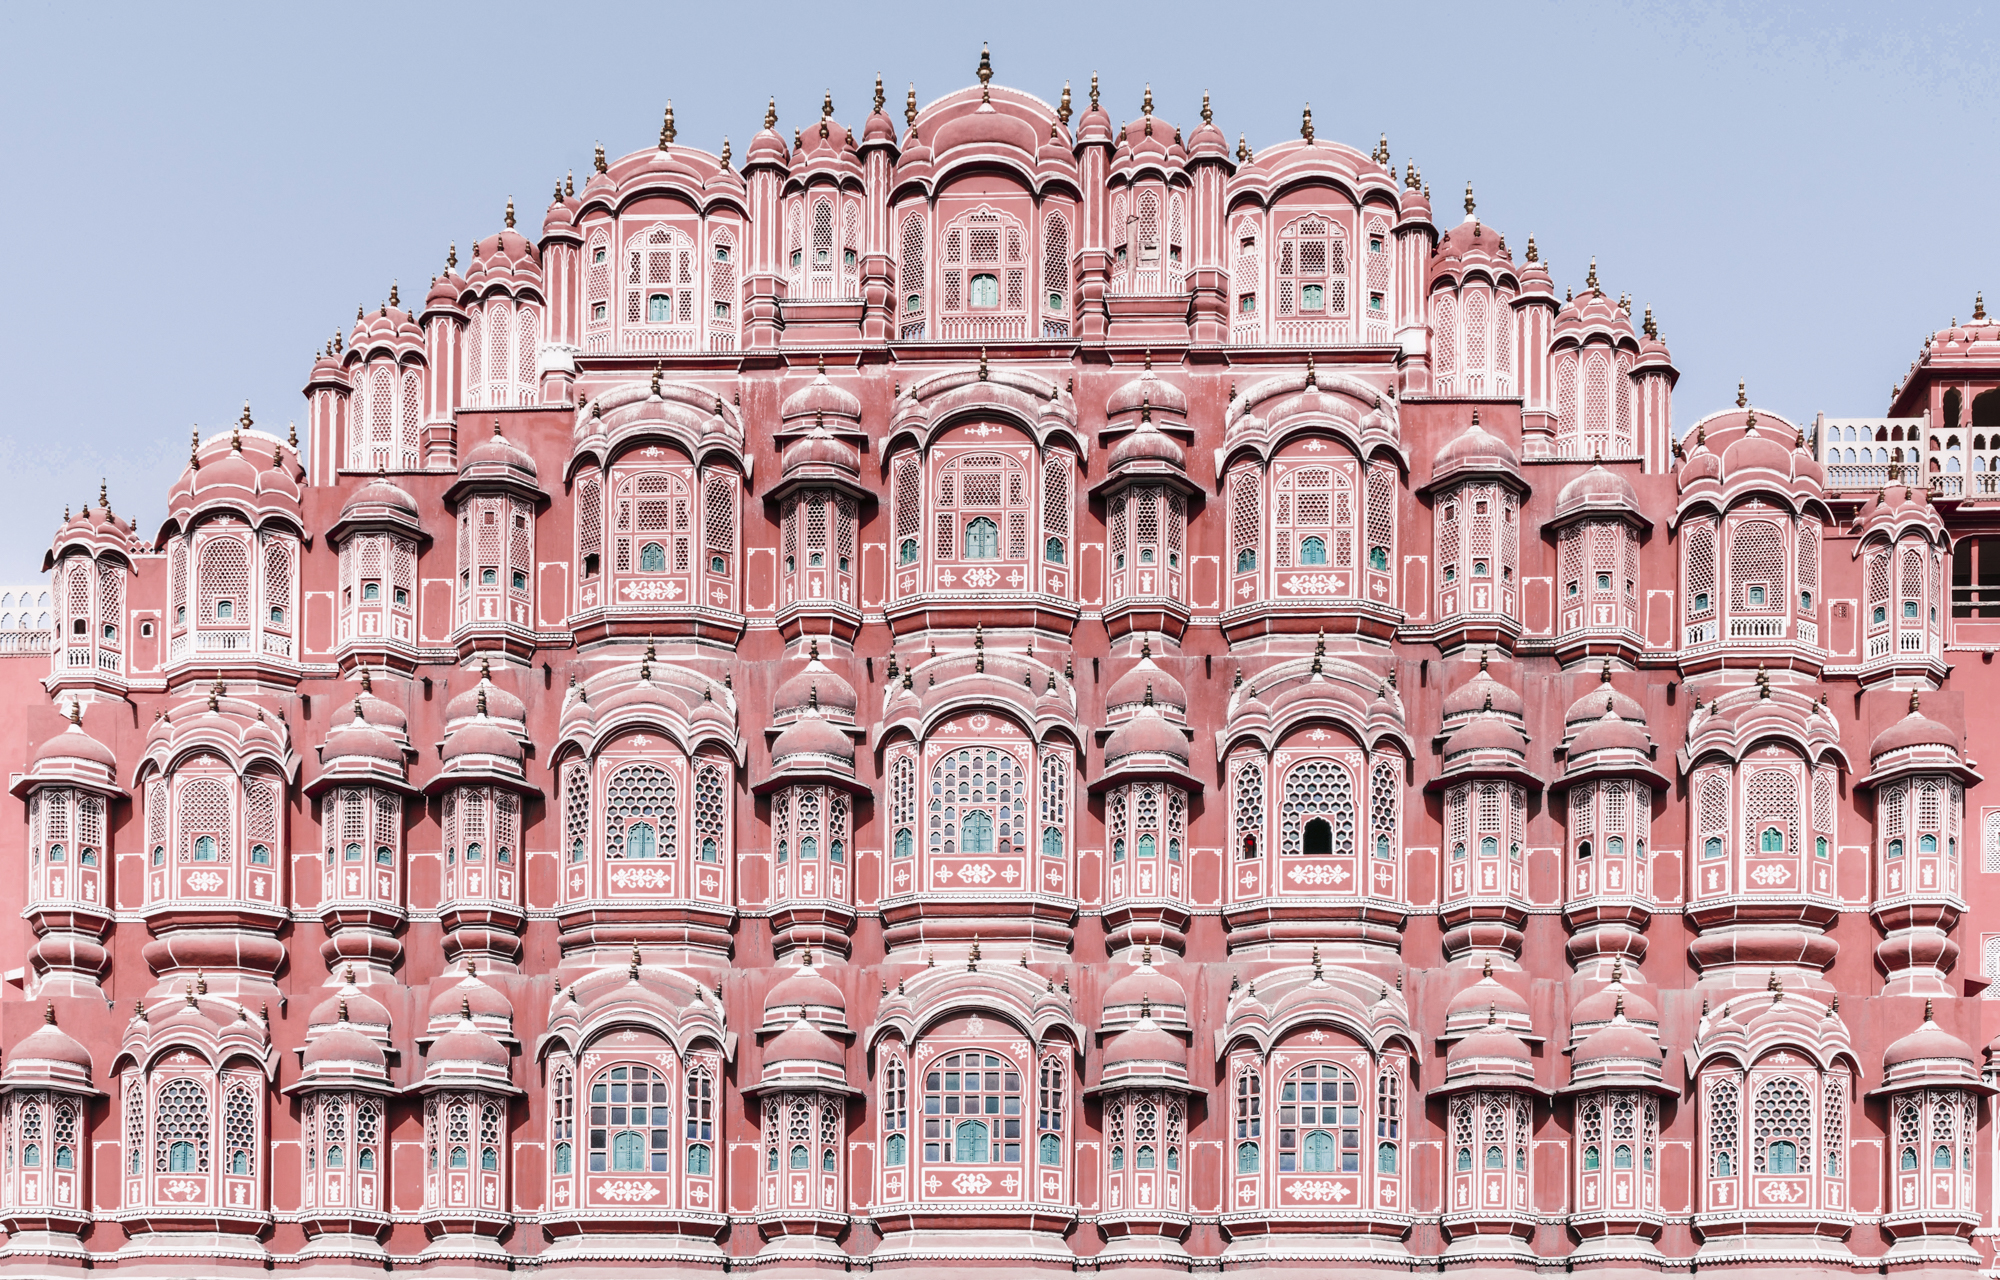 """Jaipur - While staying at a quintessential Haveli (onetime royal palace) with peacock-blue hallways and magnolia-fringed Moghal gardens, experience the capital of the """"Land of Kings"""". Jaipur is a pink-washed city crystalized by age-old royalty studded with royal pavilions, ornate gardens and unicolored palace fronts that take your breath away with their intricate design and imposing size. Take on the busy craft bazaar with an expert shopper and meet masters of crafts in their workshops of traditional block printing, hand-spun khadi fabrics, and the almost-extinct jamdani weaving. Behind closed doors, stop by private ateliers of jewelry makers and metalwork artists who will show you their treasured pieces. Visit the craft-centered village of Bagru outside of Jaipur for the day to discover the origins of ancient traditions. Take your tastebuds on a culinary journey through a variety of dishes, served in street stalls and glamorous palaces."""